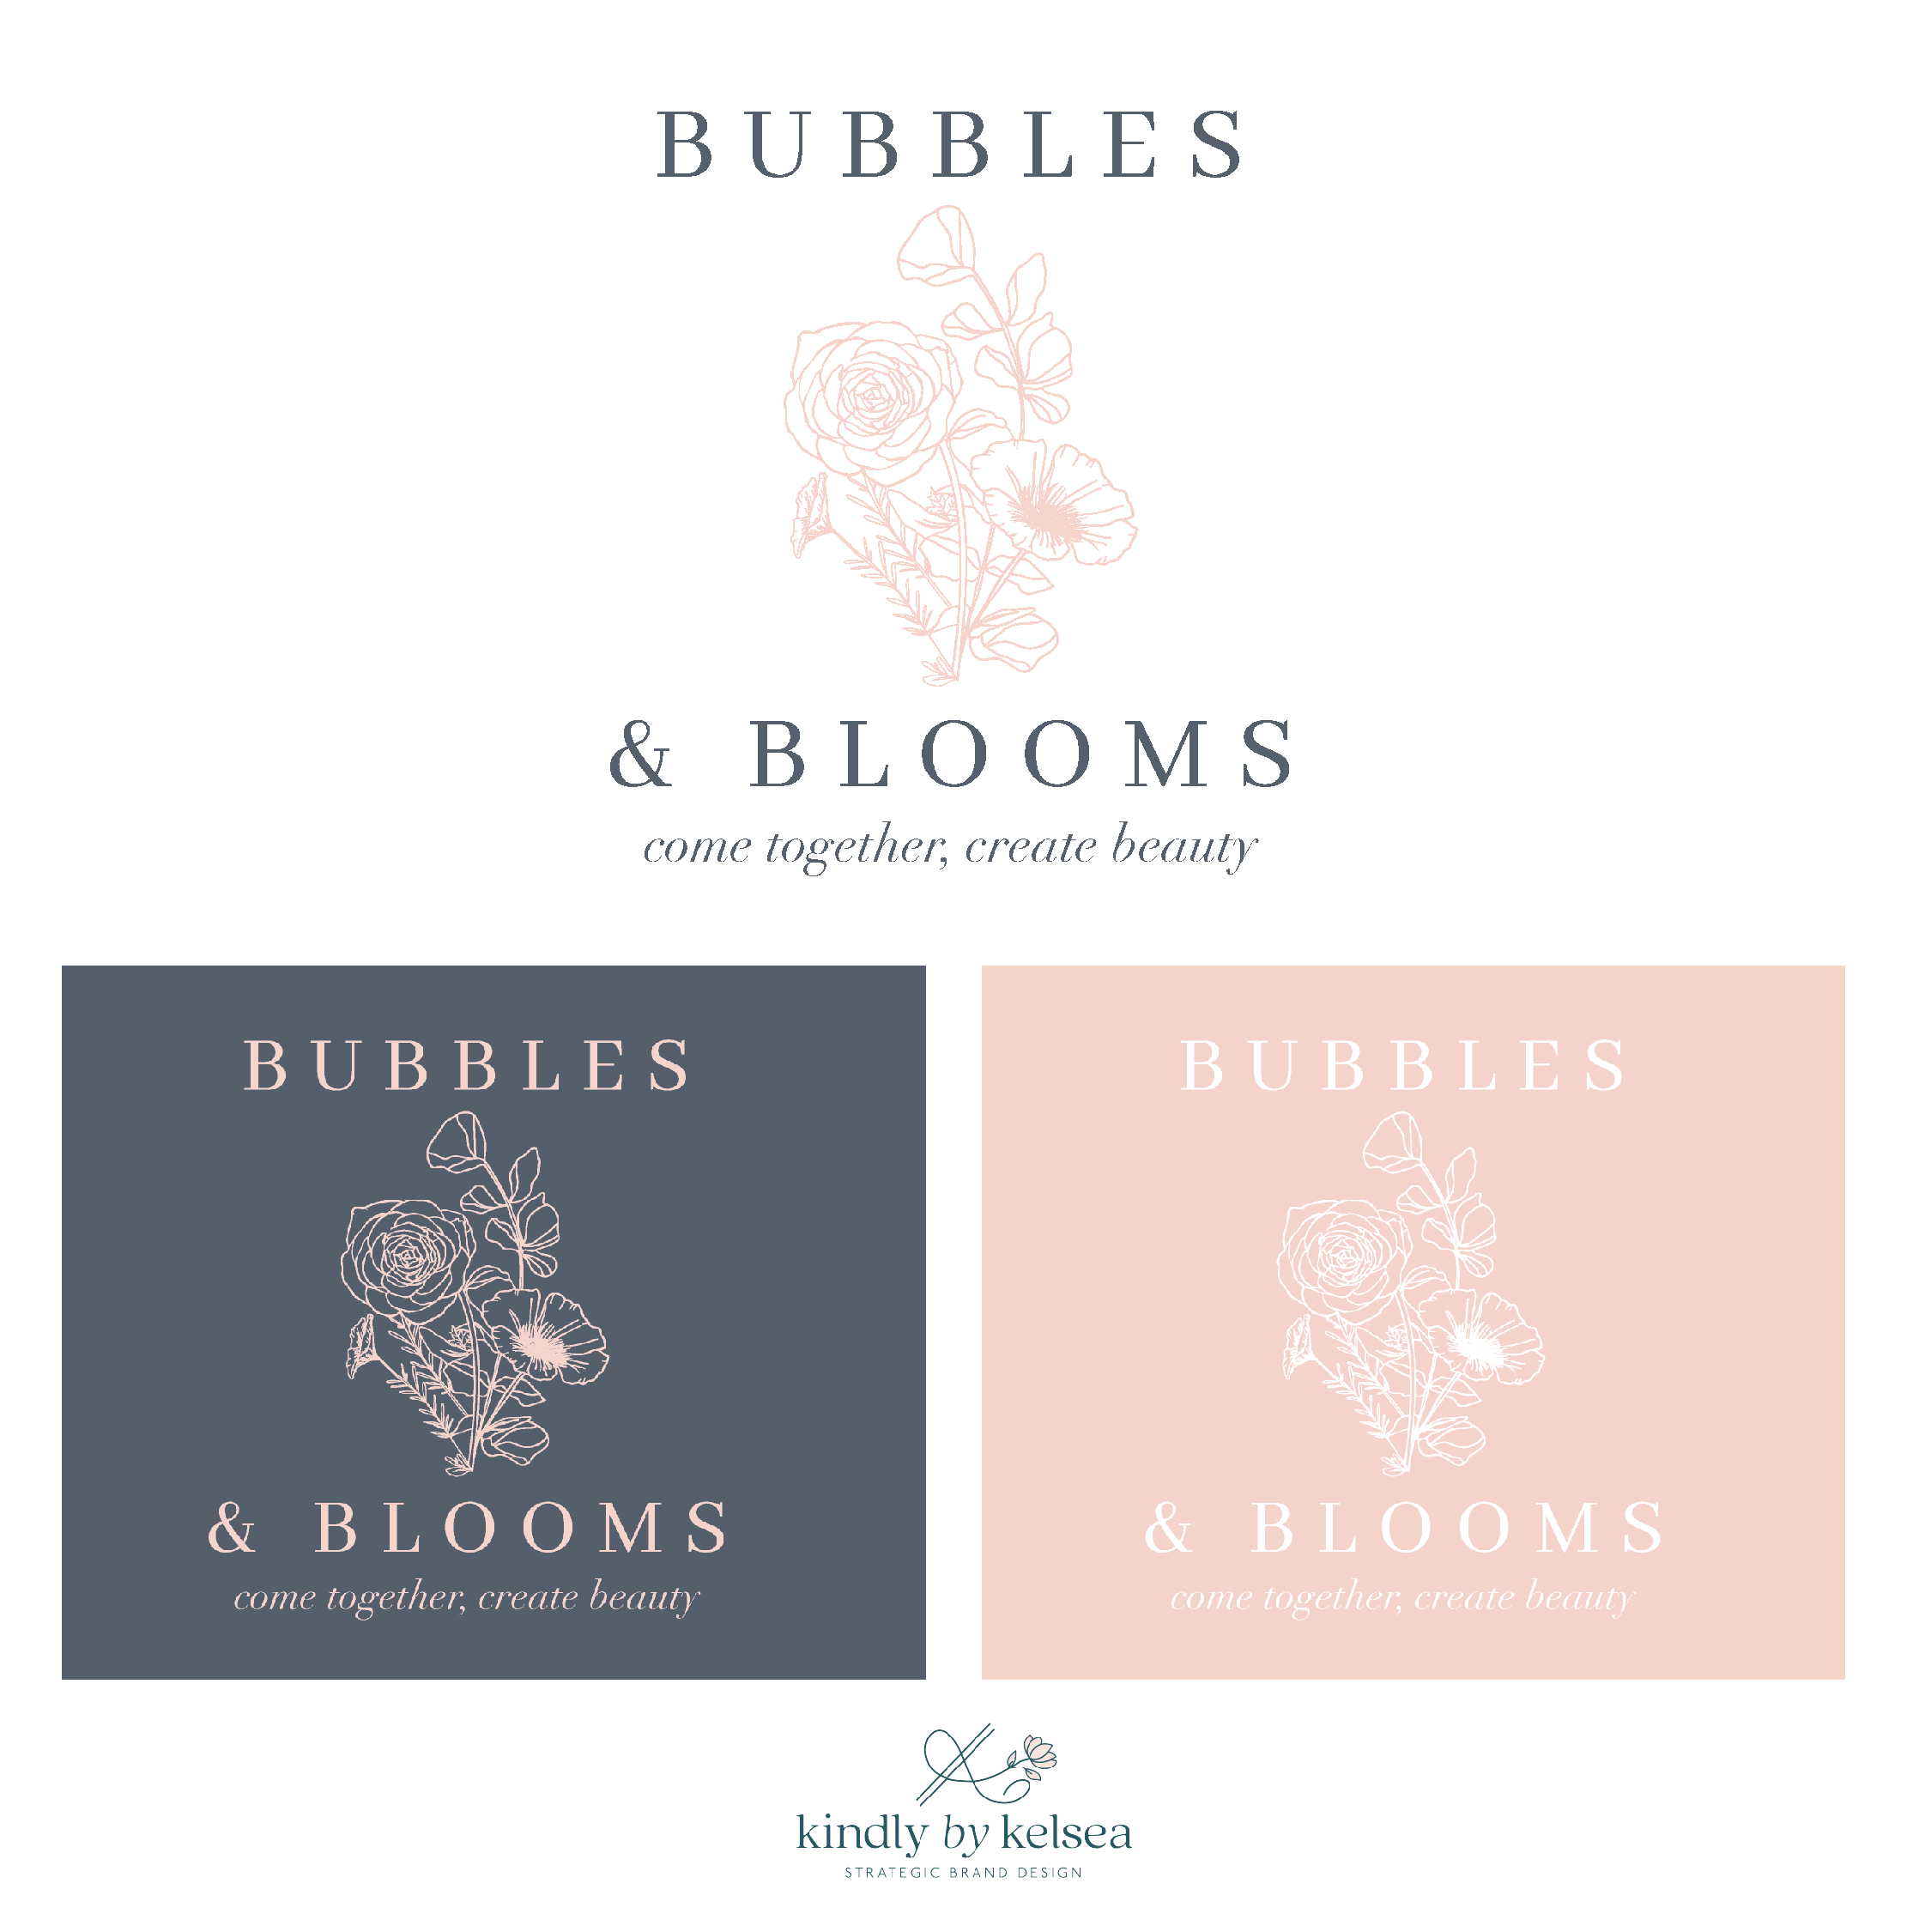 Bubbles and Blooms Katy Texas Florist brand and logo design by Kindly by Kelsea